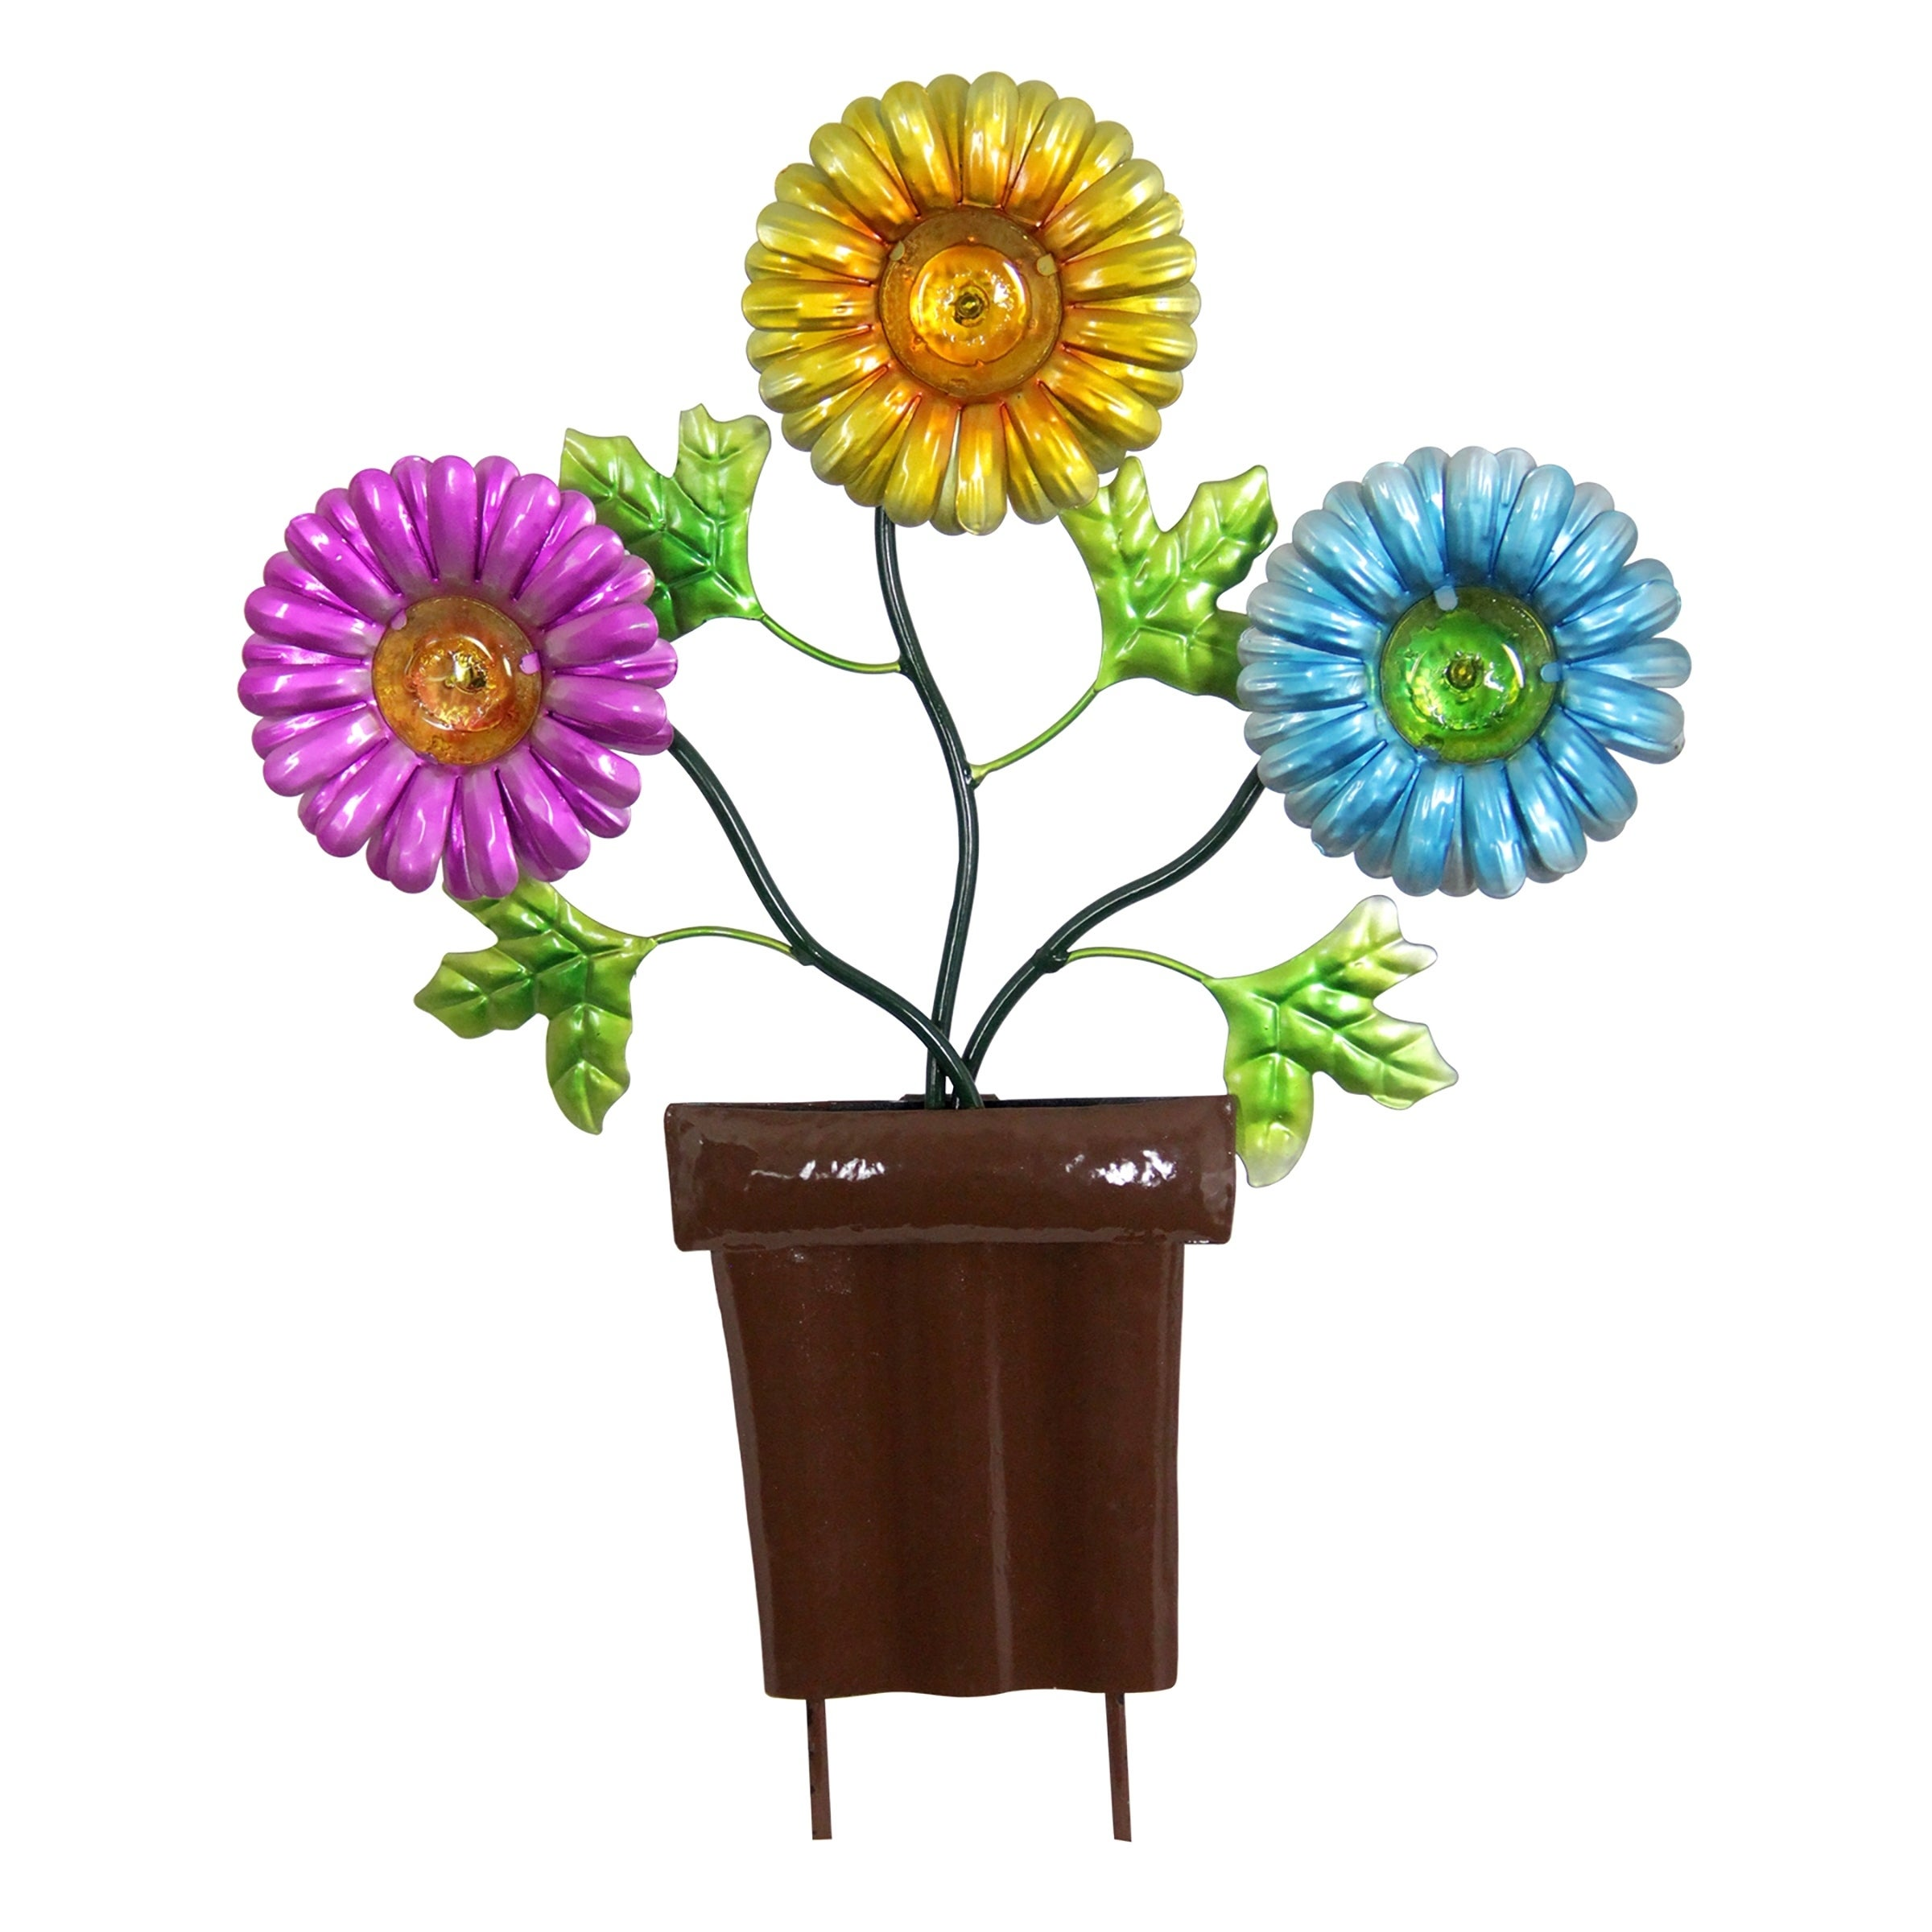 Shop Solar Metal Flowers in Pots Garden Stakes Brown Pot - Free Shipping On Orders Over $45 - Overstock - 27913222  sc 1 st  Overstock.com & Shop Solar Metal Flowers in Pots Garden Stakes Brown Pot - Free ...